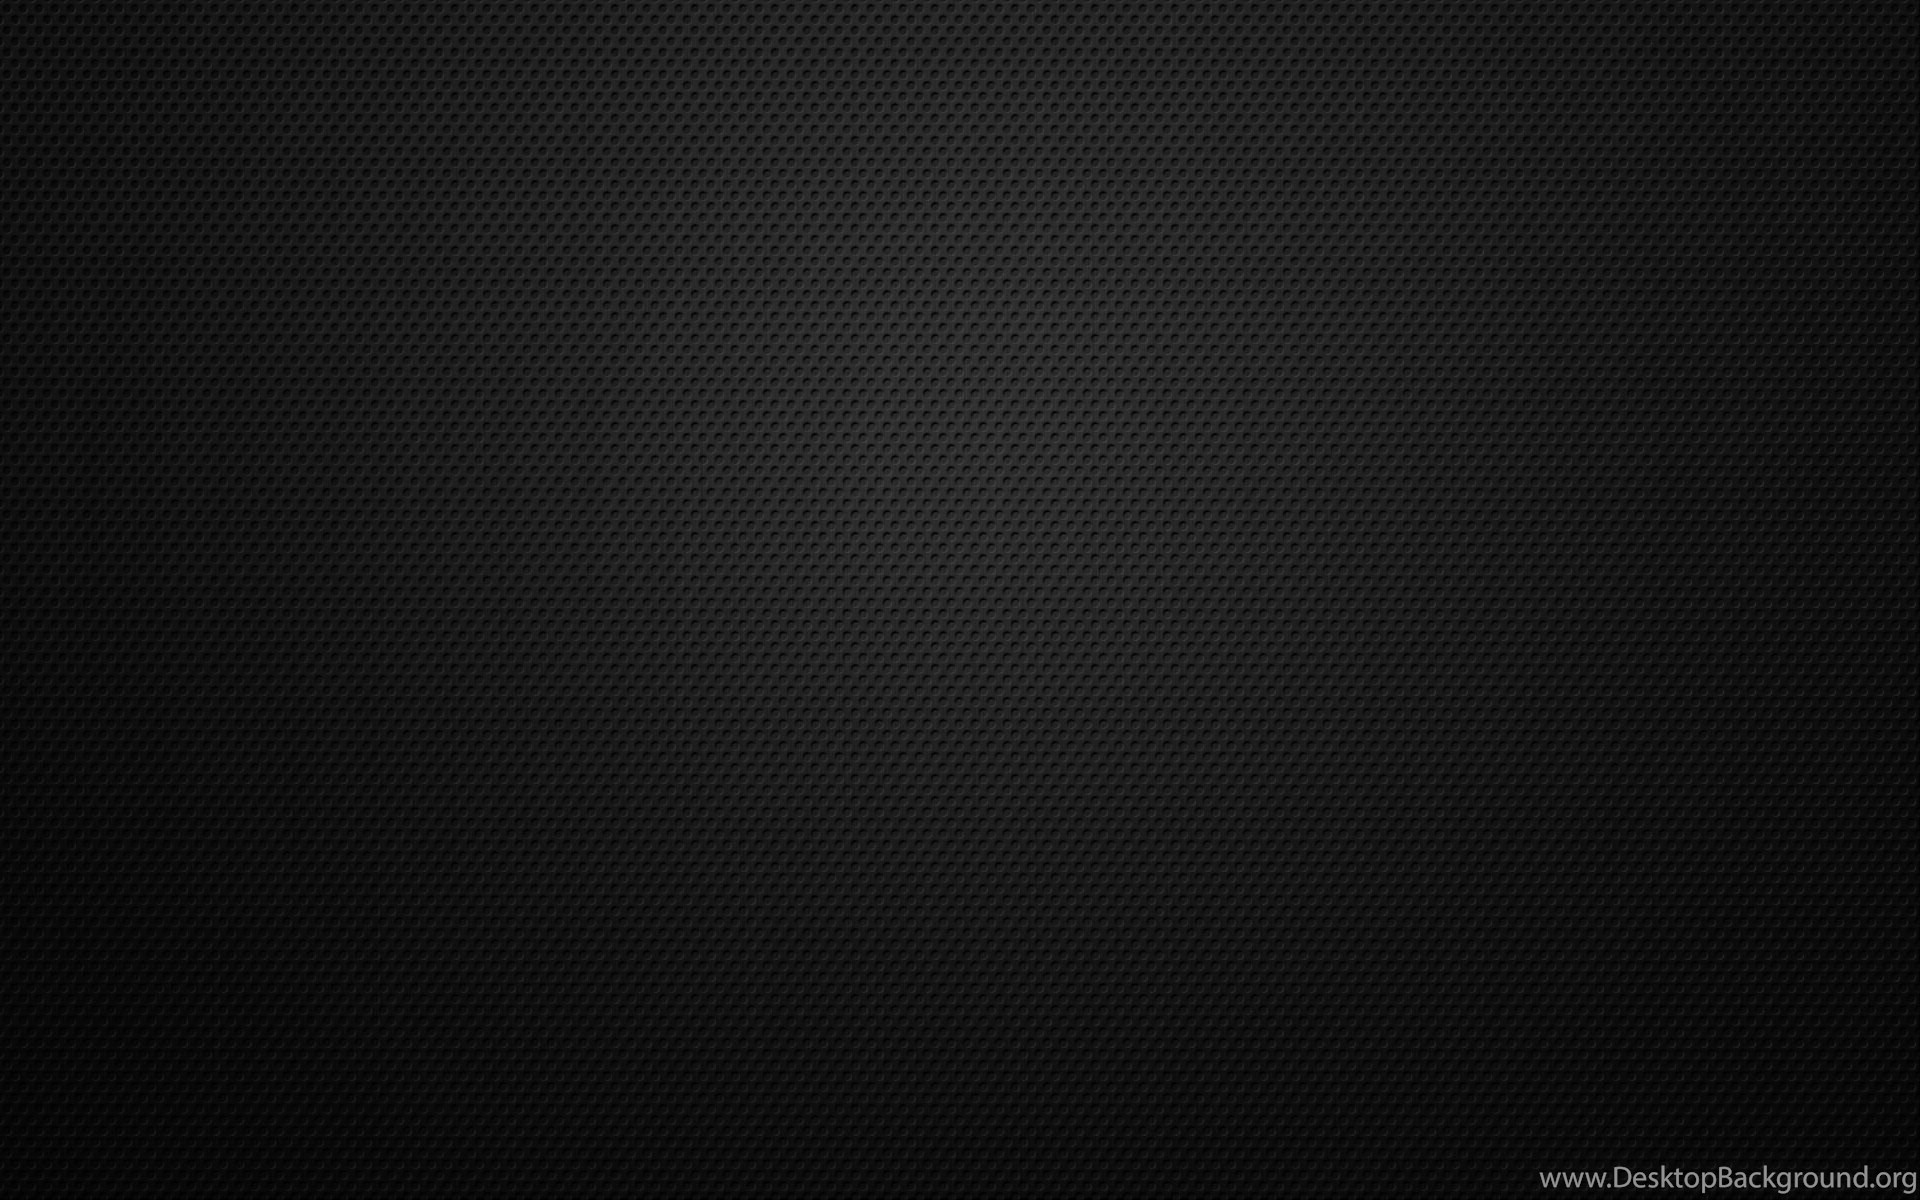 Full HD Wallpapers + Backgrounds, Black, Metallic Desktop